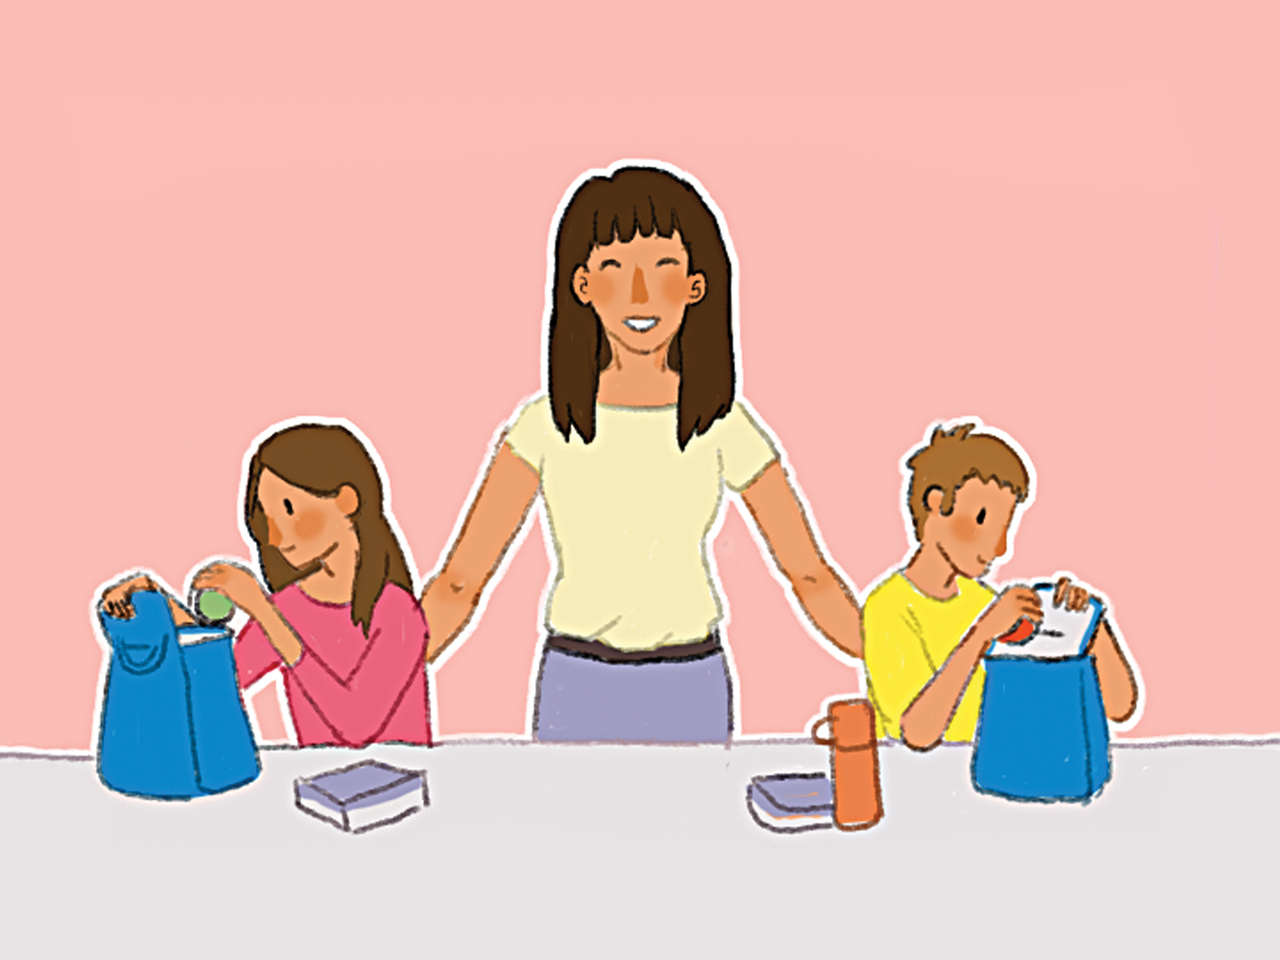 Illustration of a happy mom with her kids next to her packing their lunches